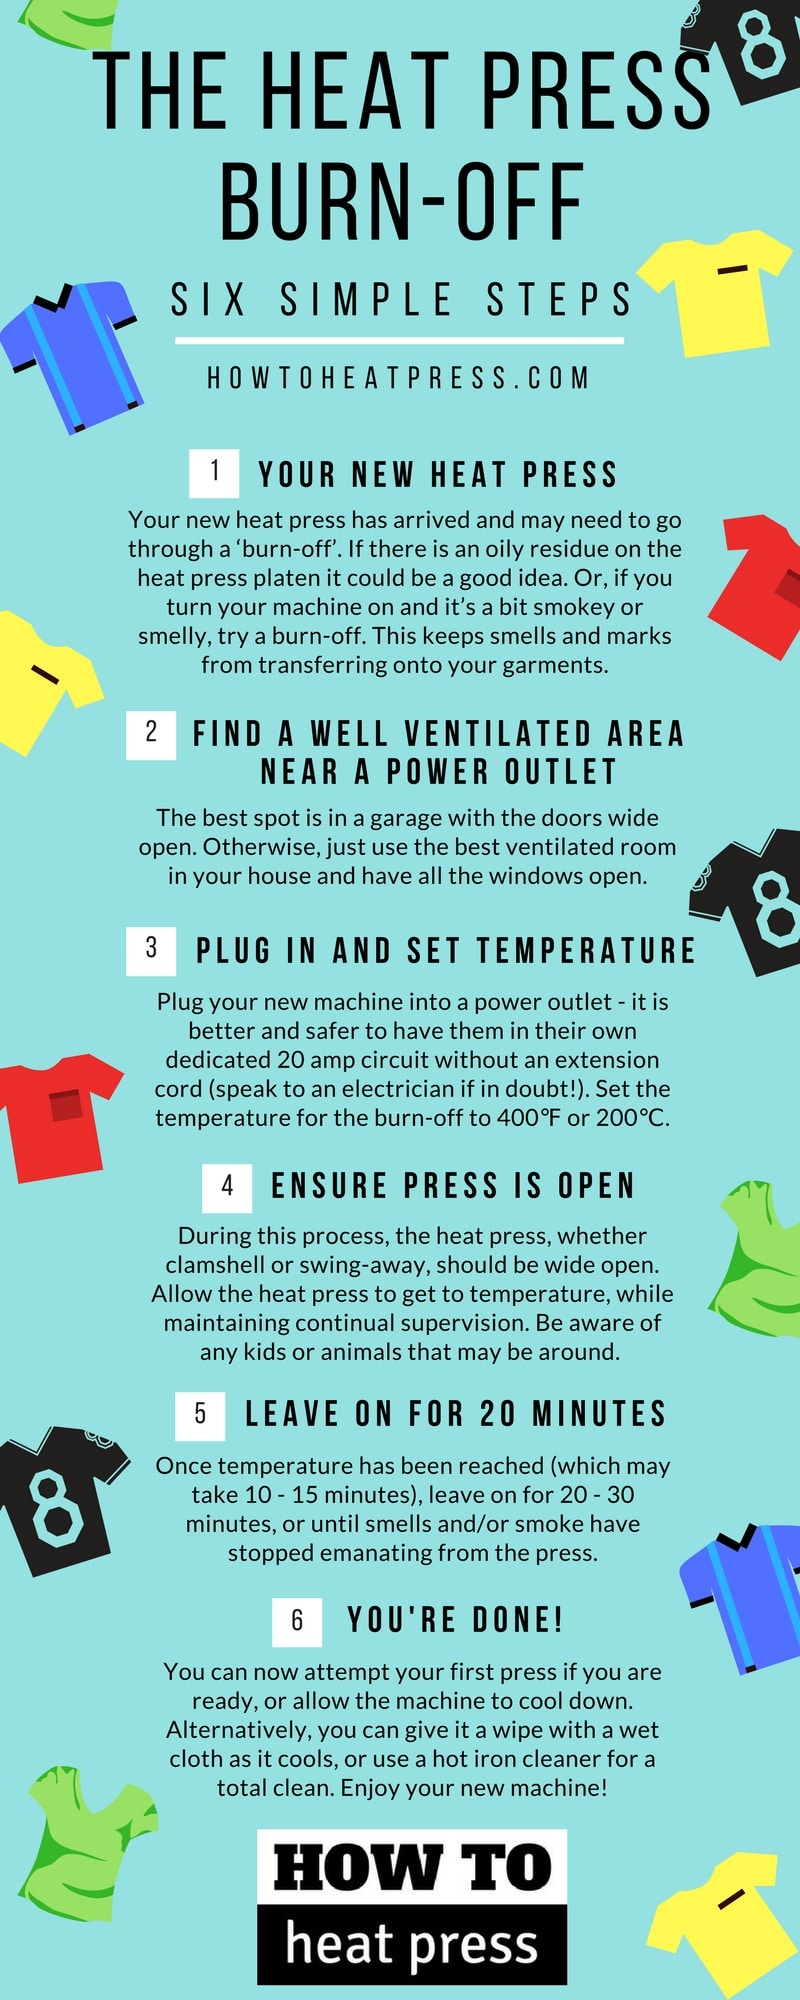 The Heat Press Burn-Off: 6 Simple Steps PLUS Infographic!